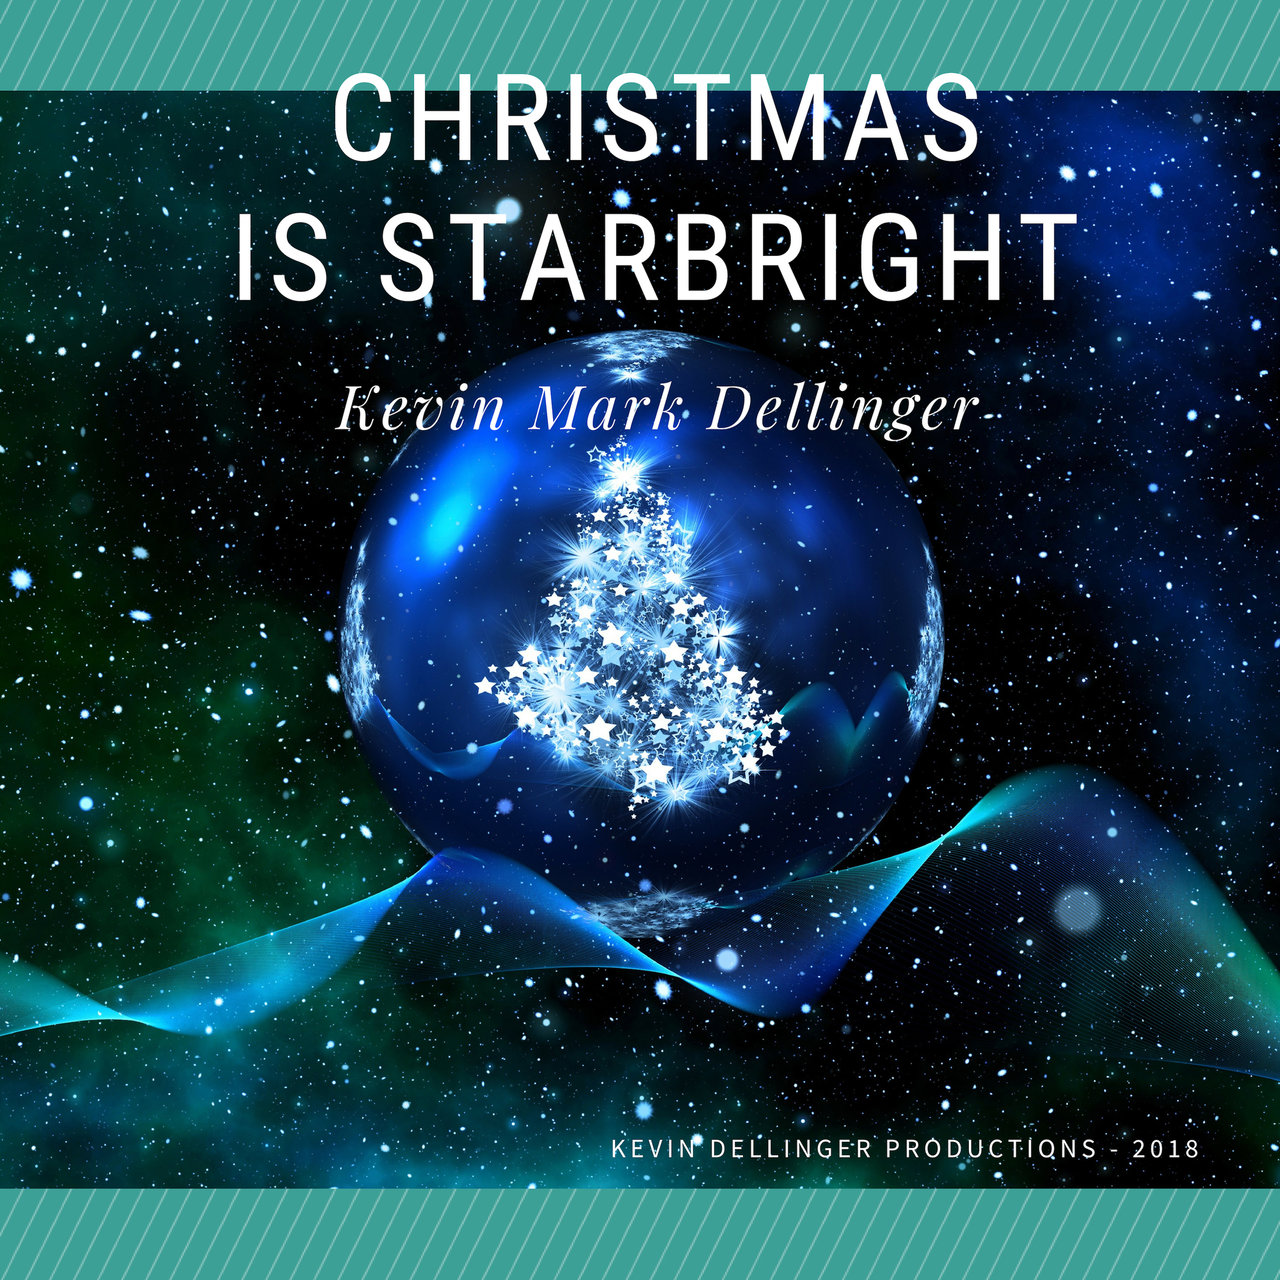 Christmas is Starbright